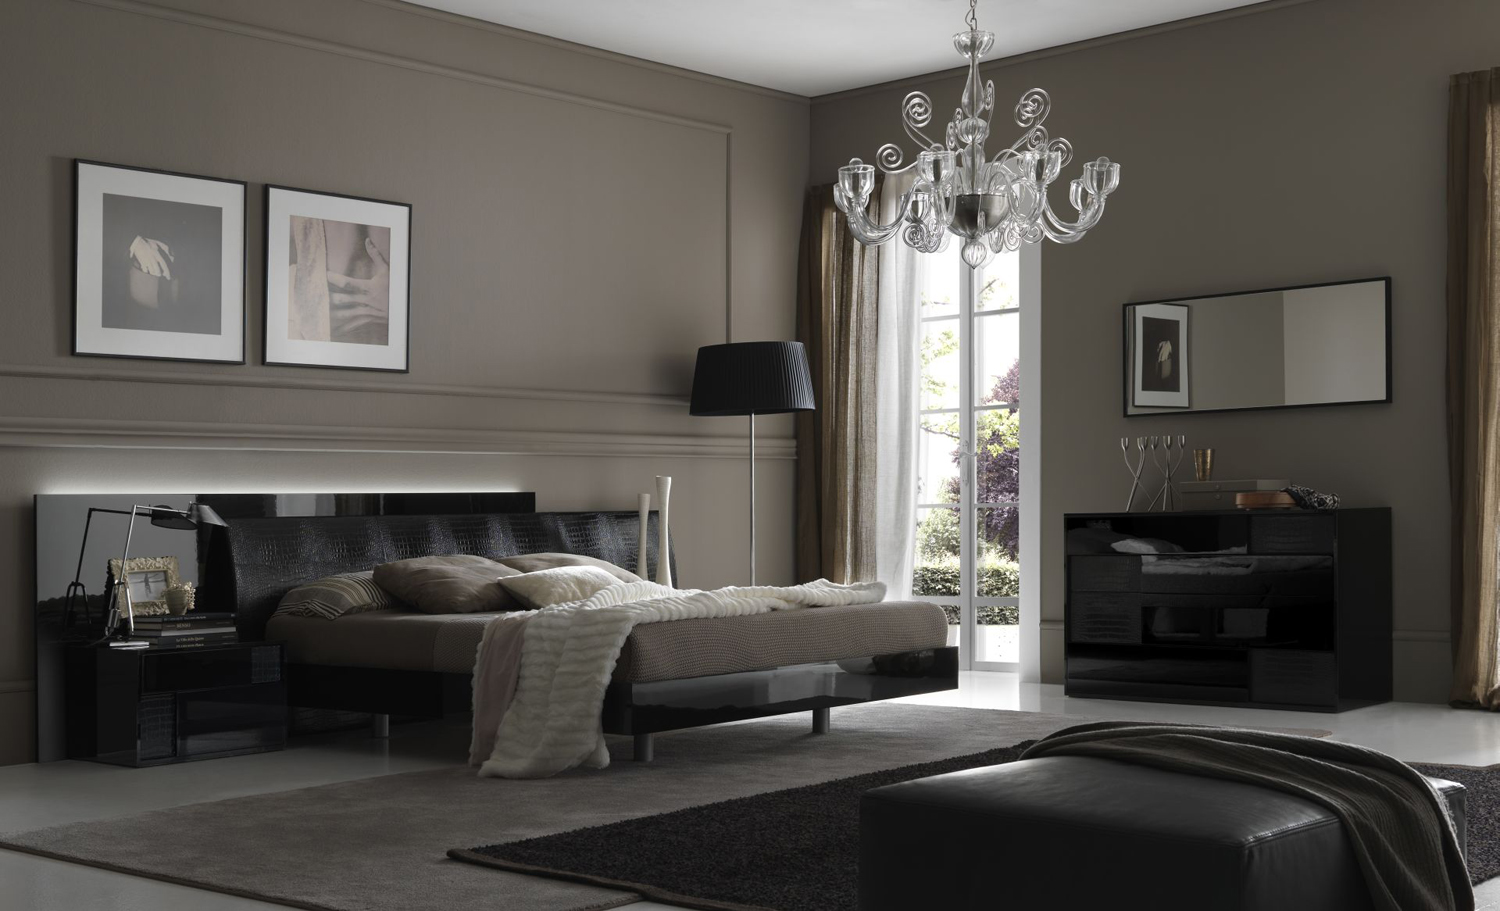 Bedroom decorating ideas from evinco for Contemporary design style